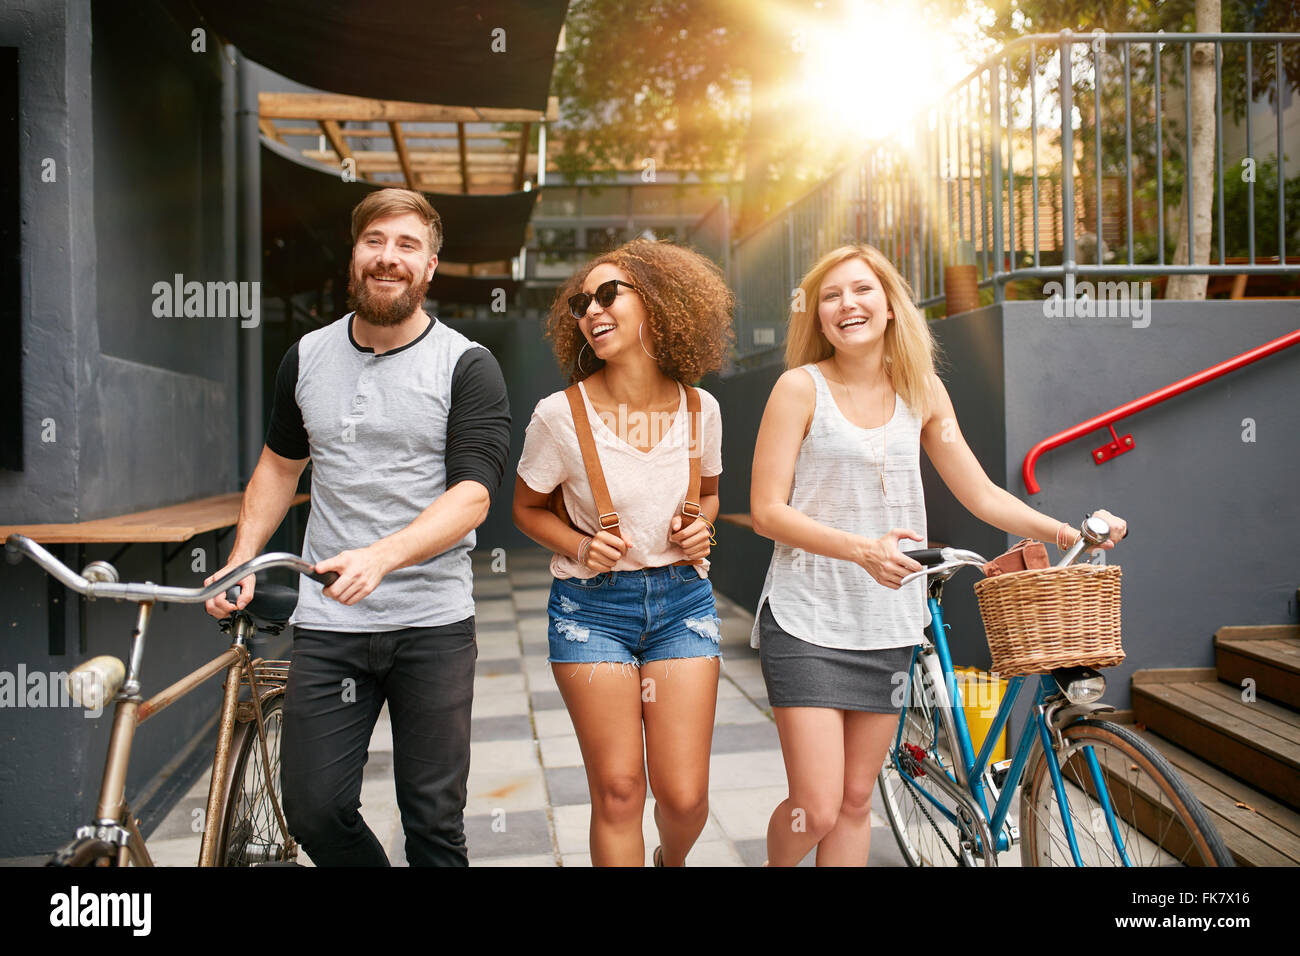 Three young adults walking together having fun. Young people with bikes walking outdoors in city. - Stock Image